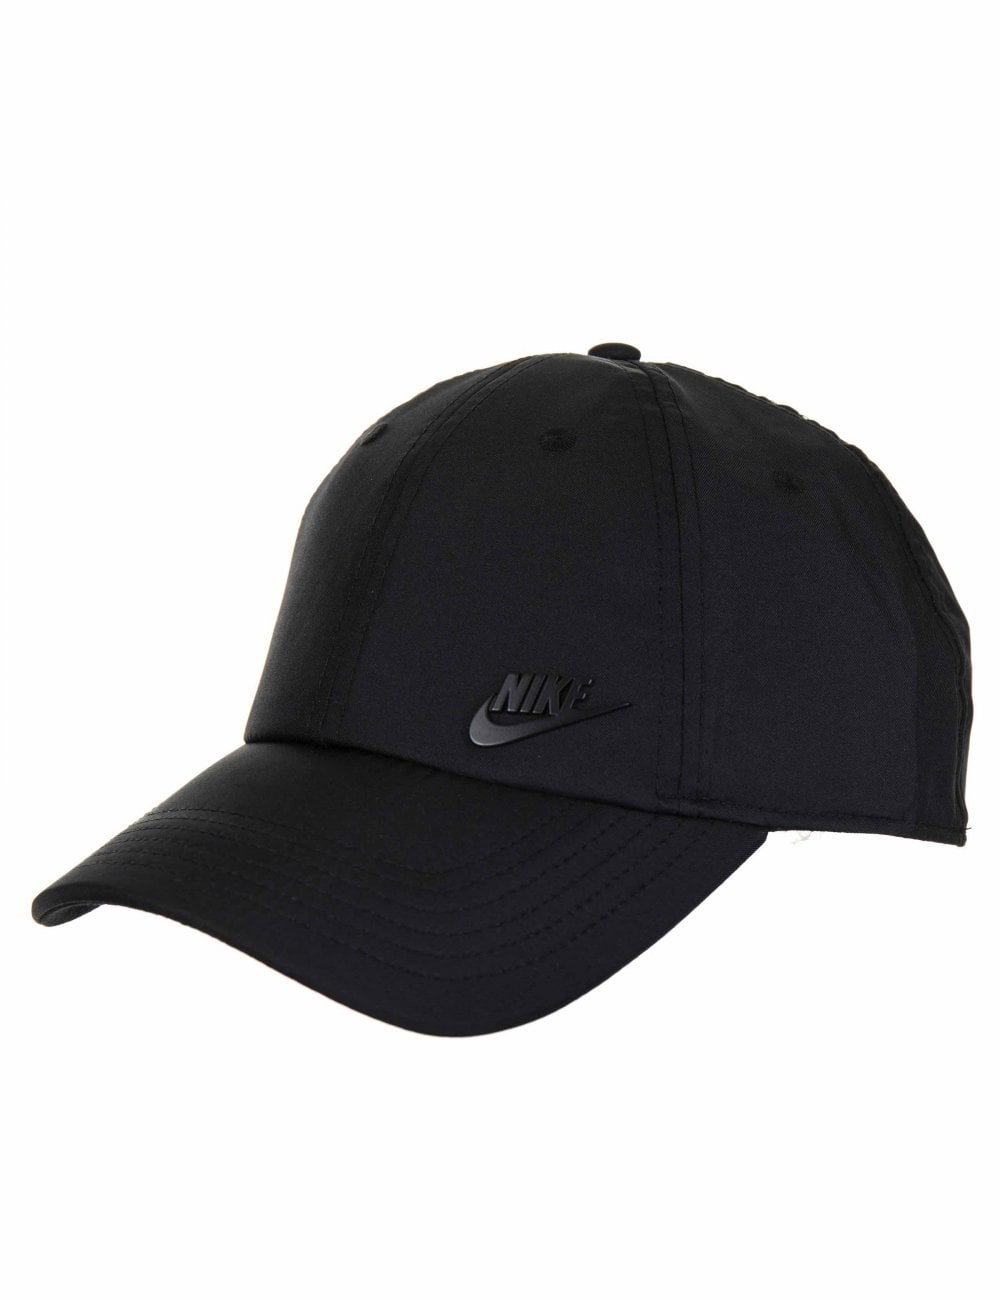 389a1502 Nike Futura Heritage 86 Aerobill Hat - Black - Hat Shop from Fat ...